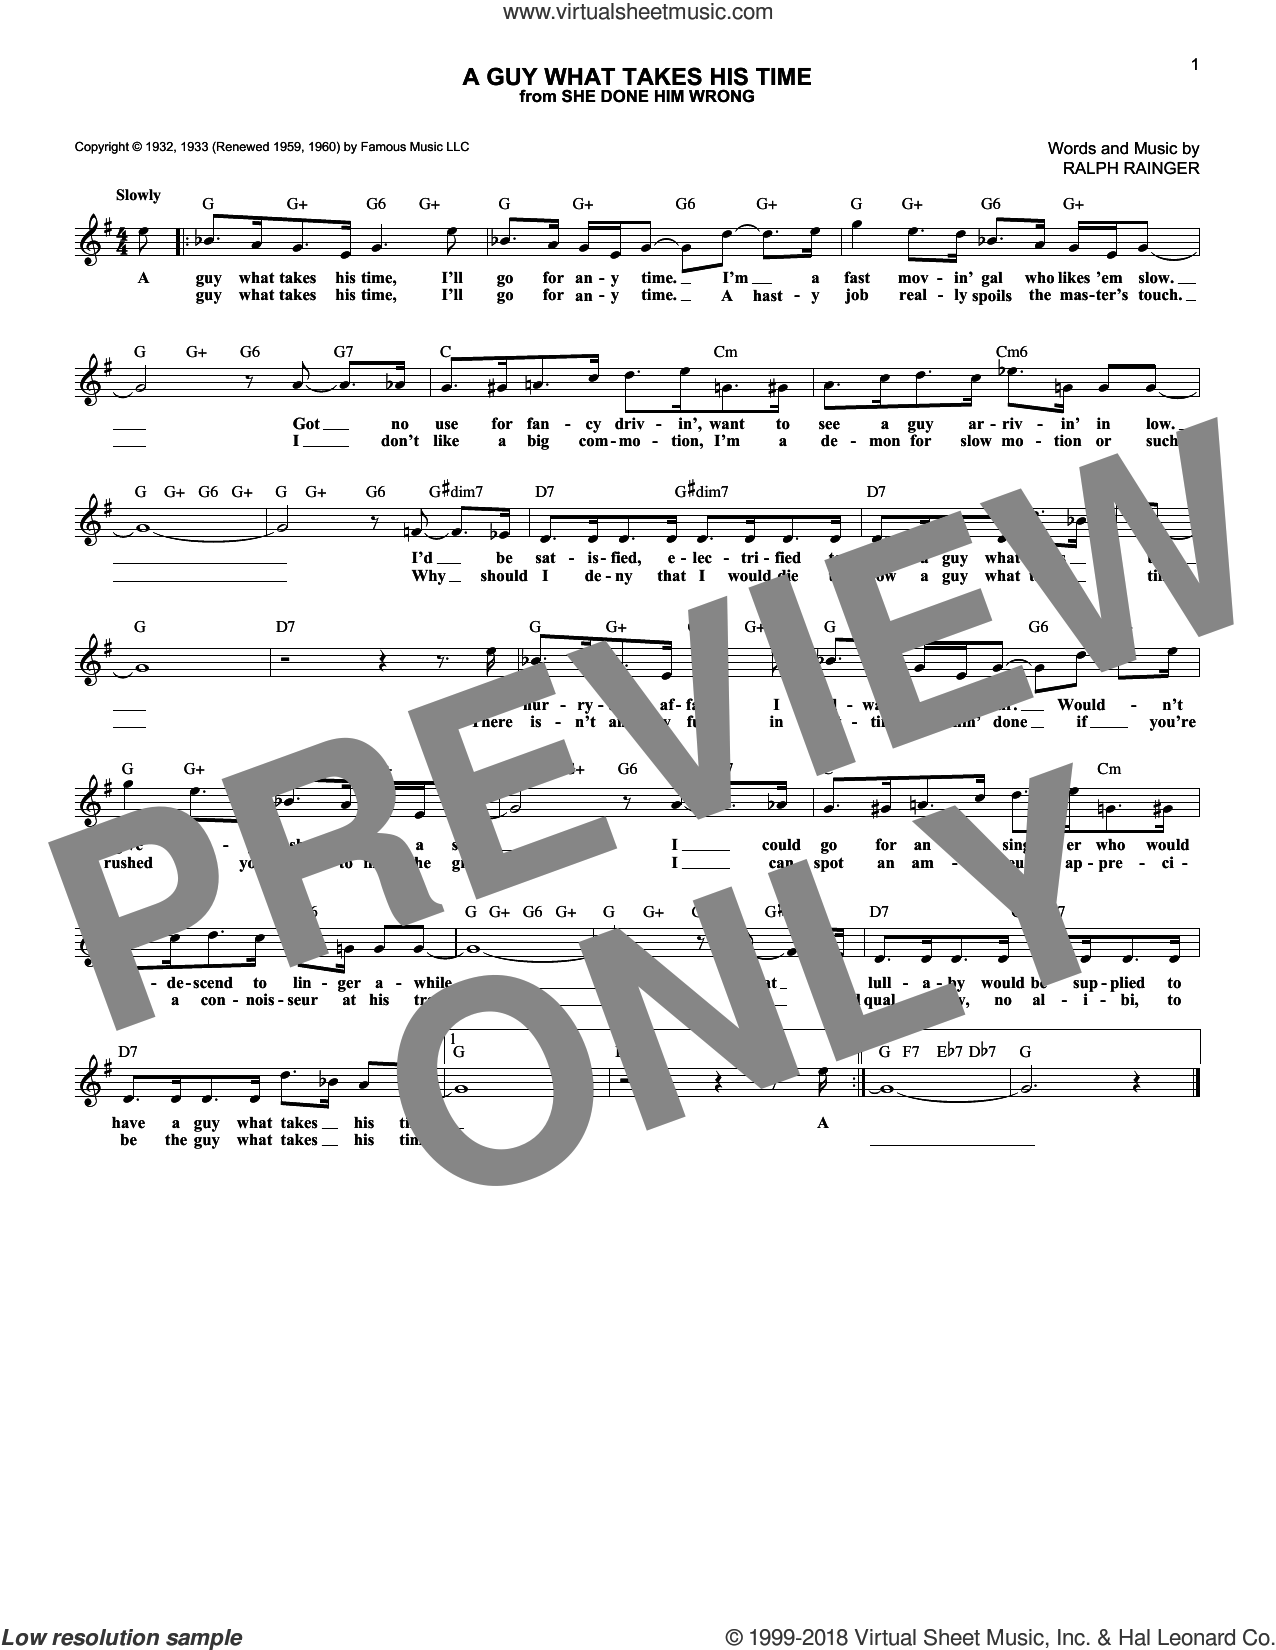 A Guy What Takes His Time sheet music for voice and other instruments (fake book) by Ralph Rainger. Score Image Preview.